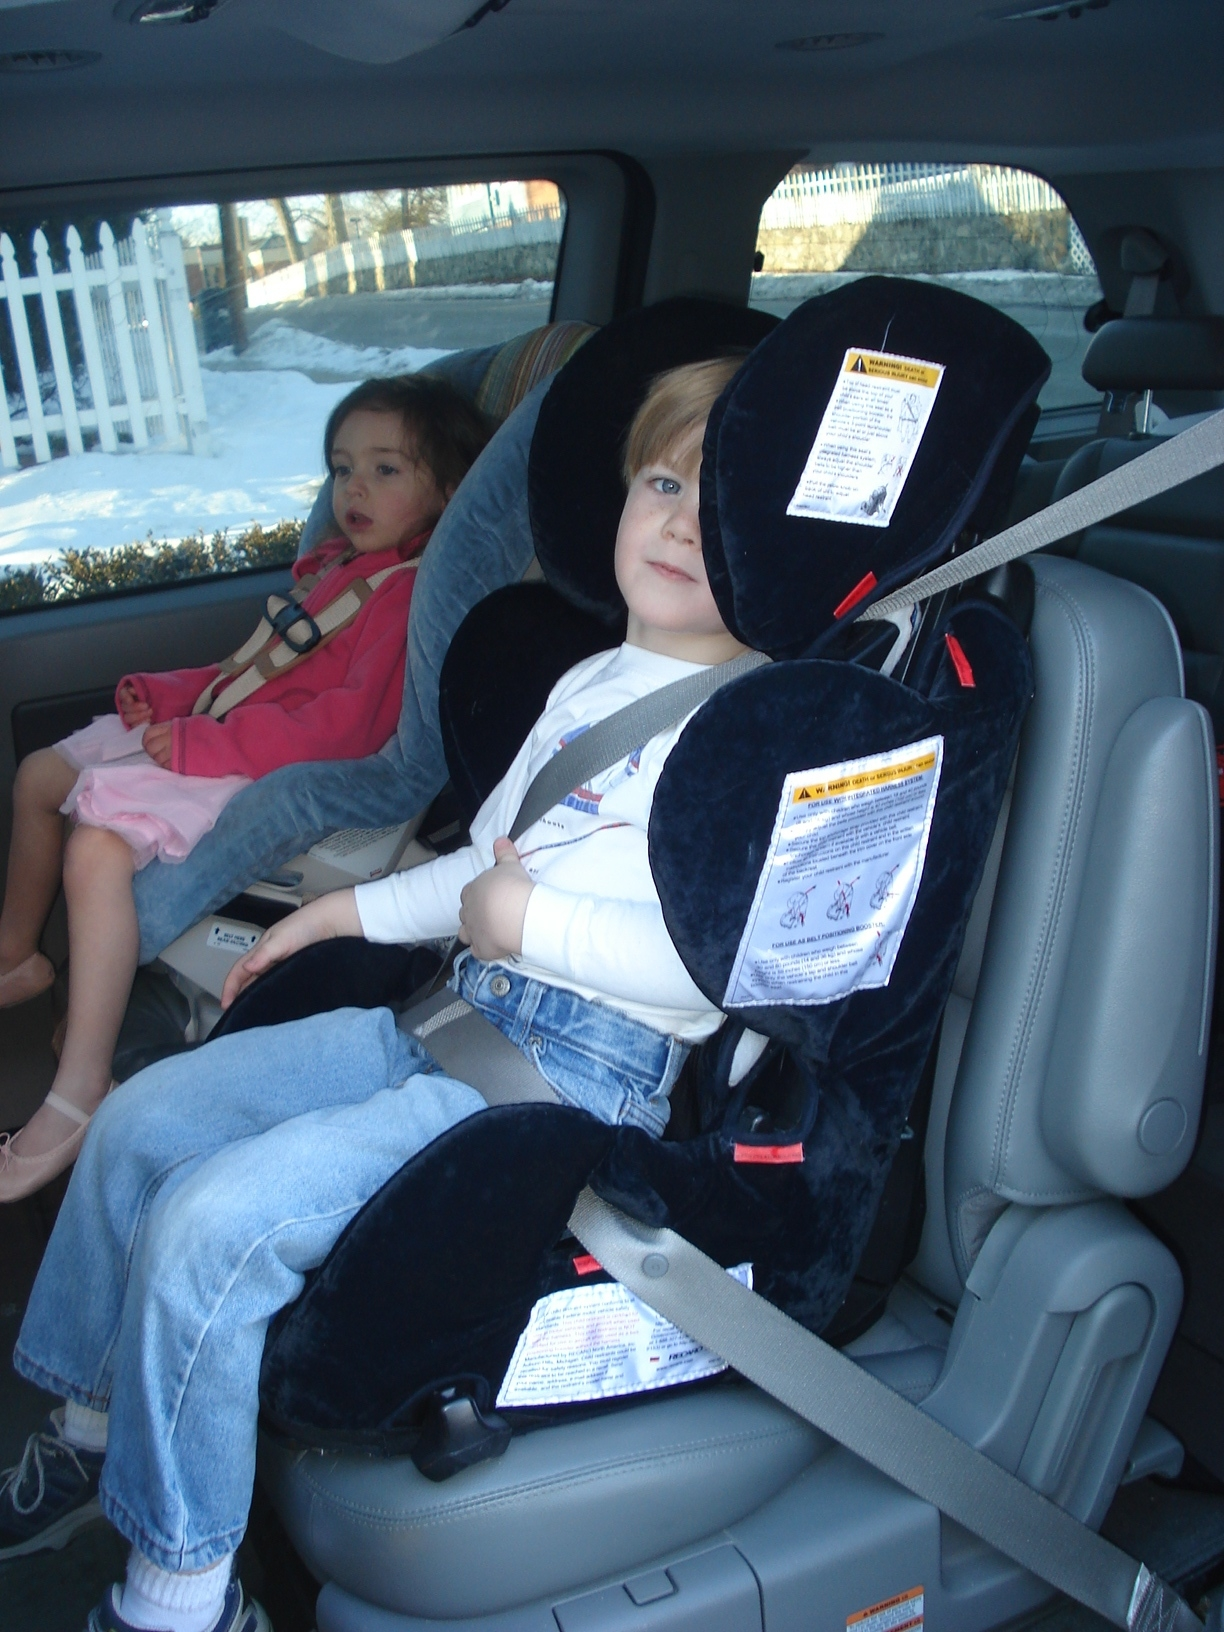 Seat Cushion Blue besides Maxresdefault further Schroth Quickfit Harness Headrest Position together with Review Britax Roemer Dualfix I Size Extended Rear Facing Car Seat Side View Not Installed as well Cobra Sidewinder Sport Seat. on 5 point harness for car seat